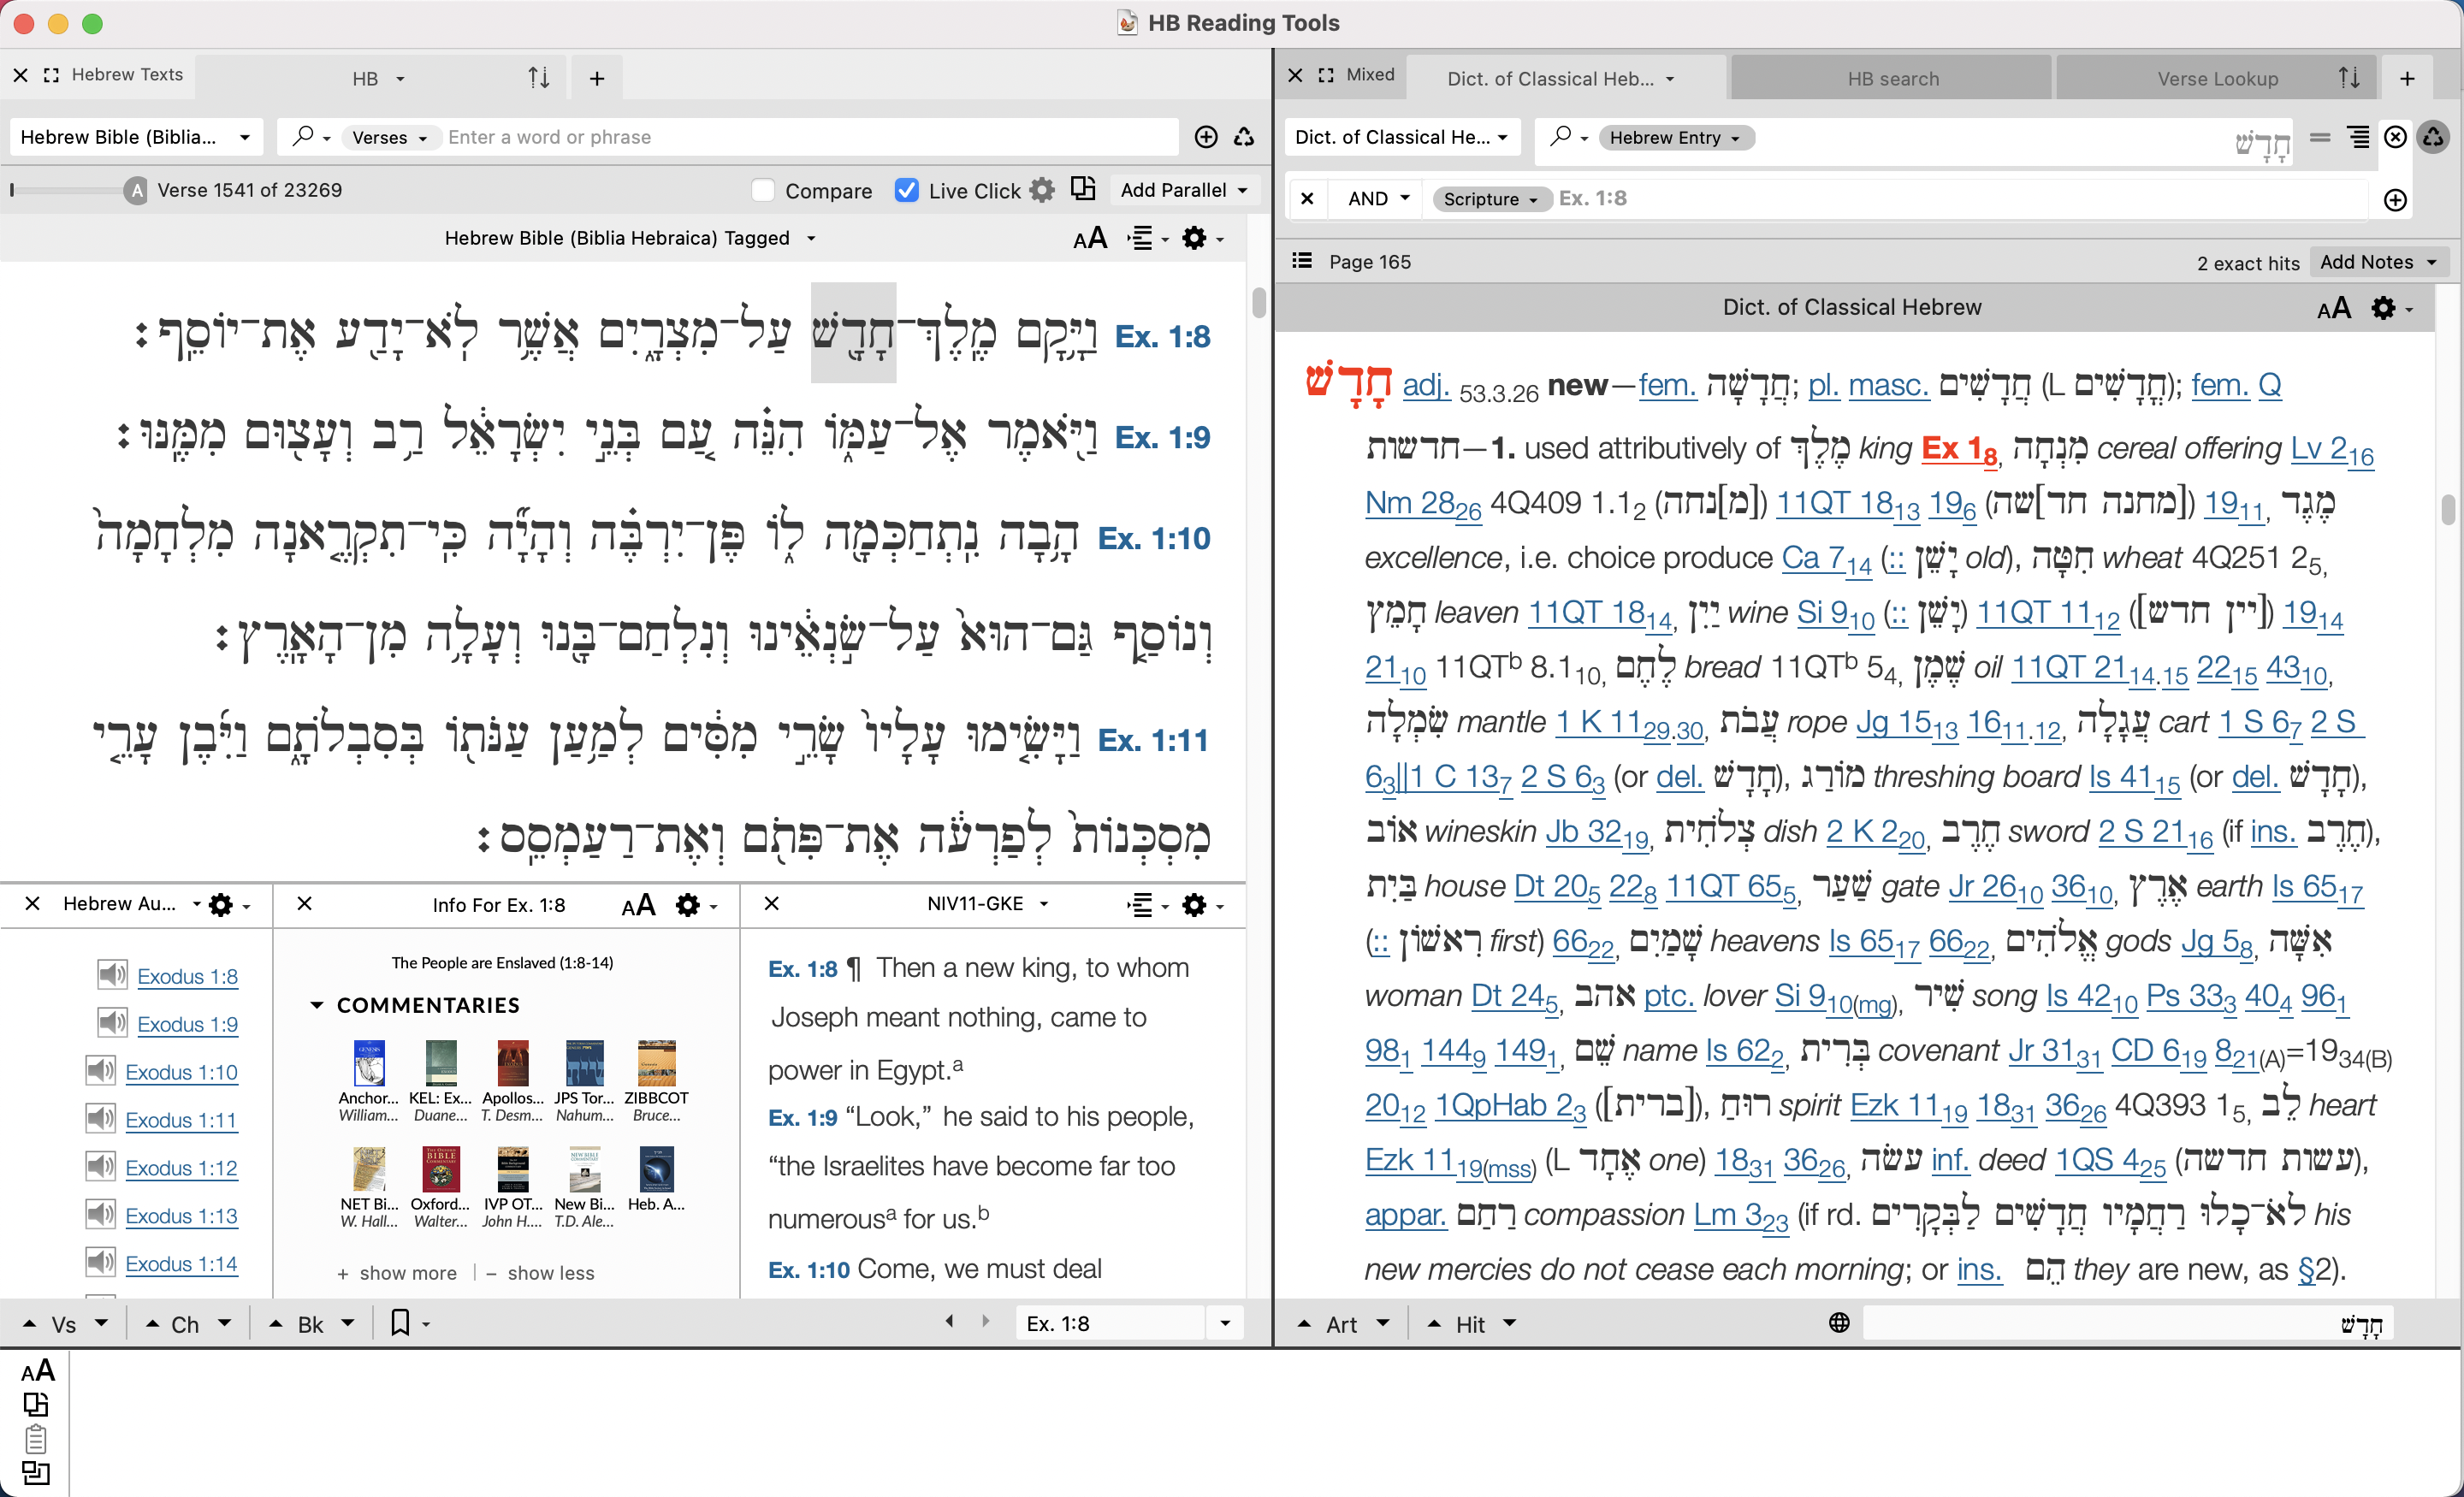 triple-click means highlighted verse references